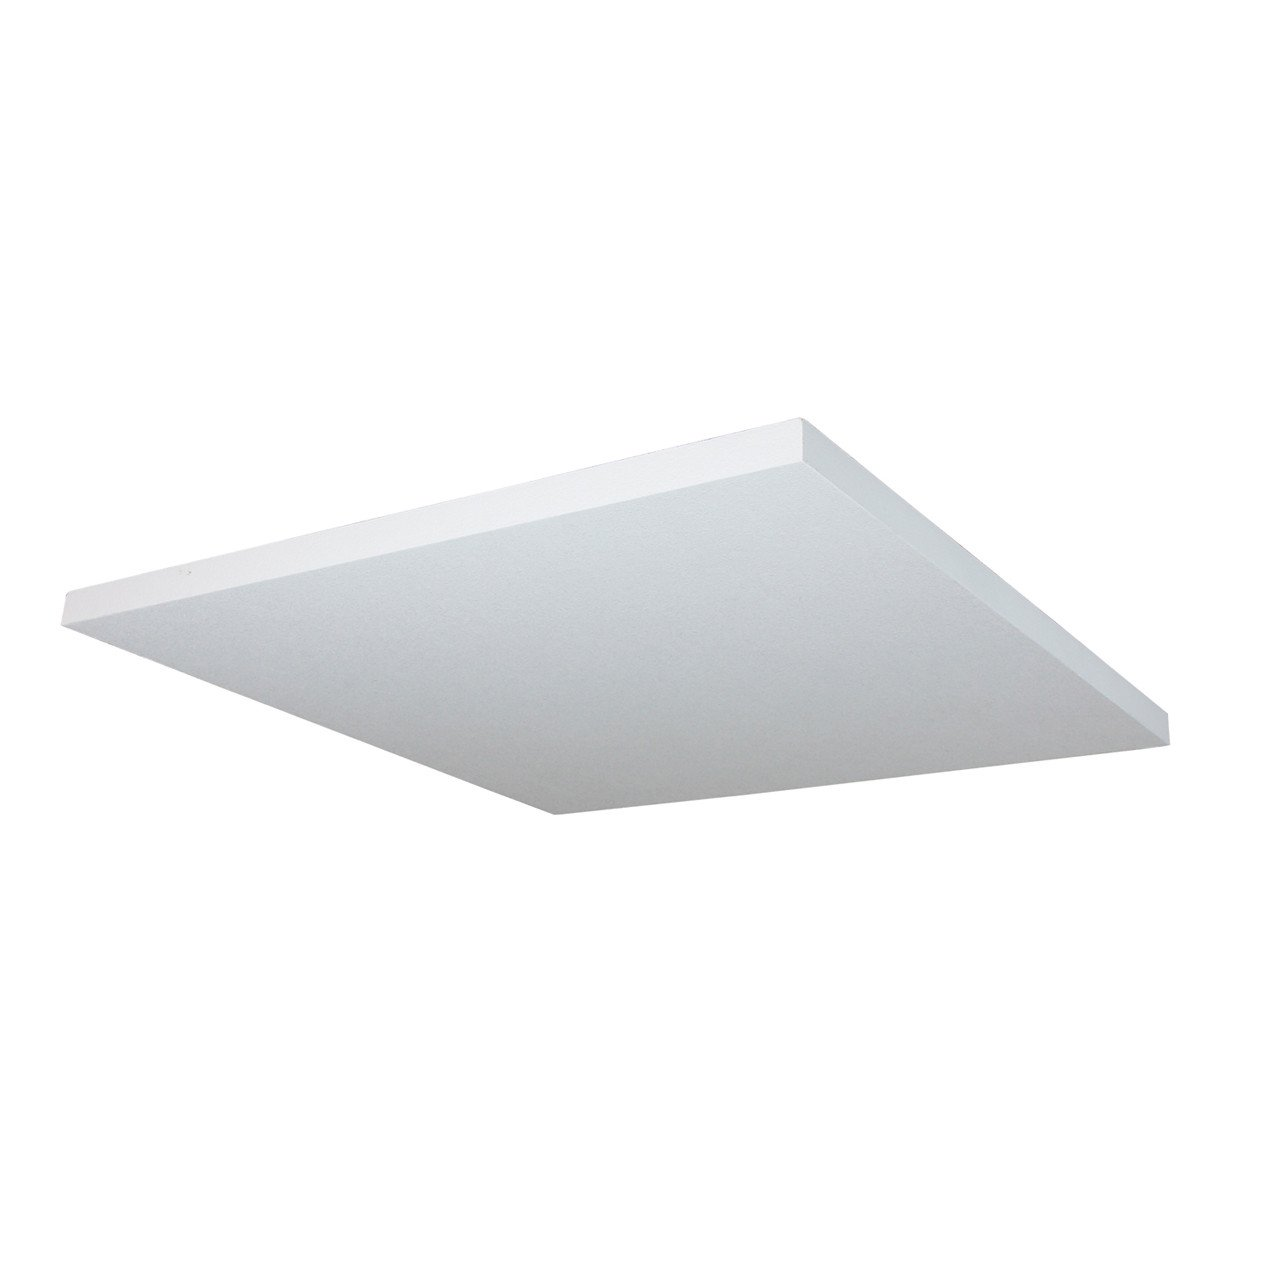 Ceiling Treatments - Primacoustic Altos 36 - Ceiling Acoustic Panel (914 X 914 X 38mm)